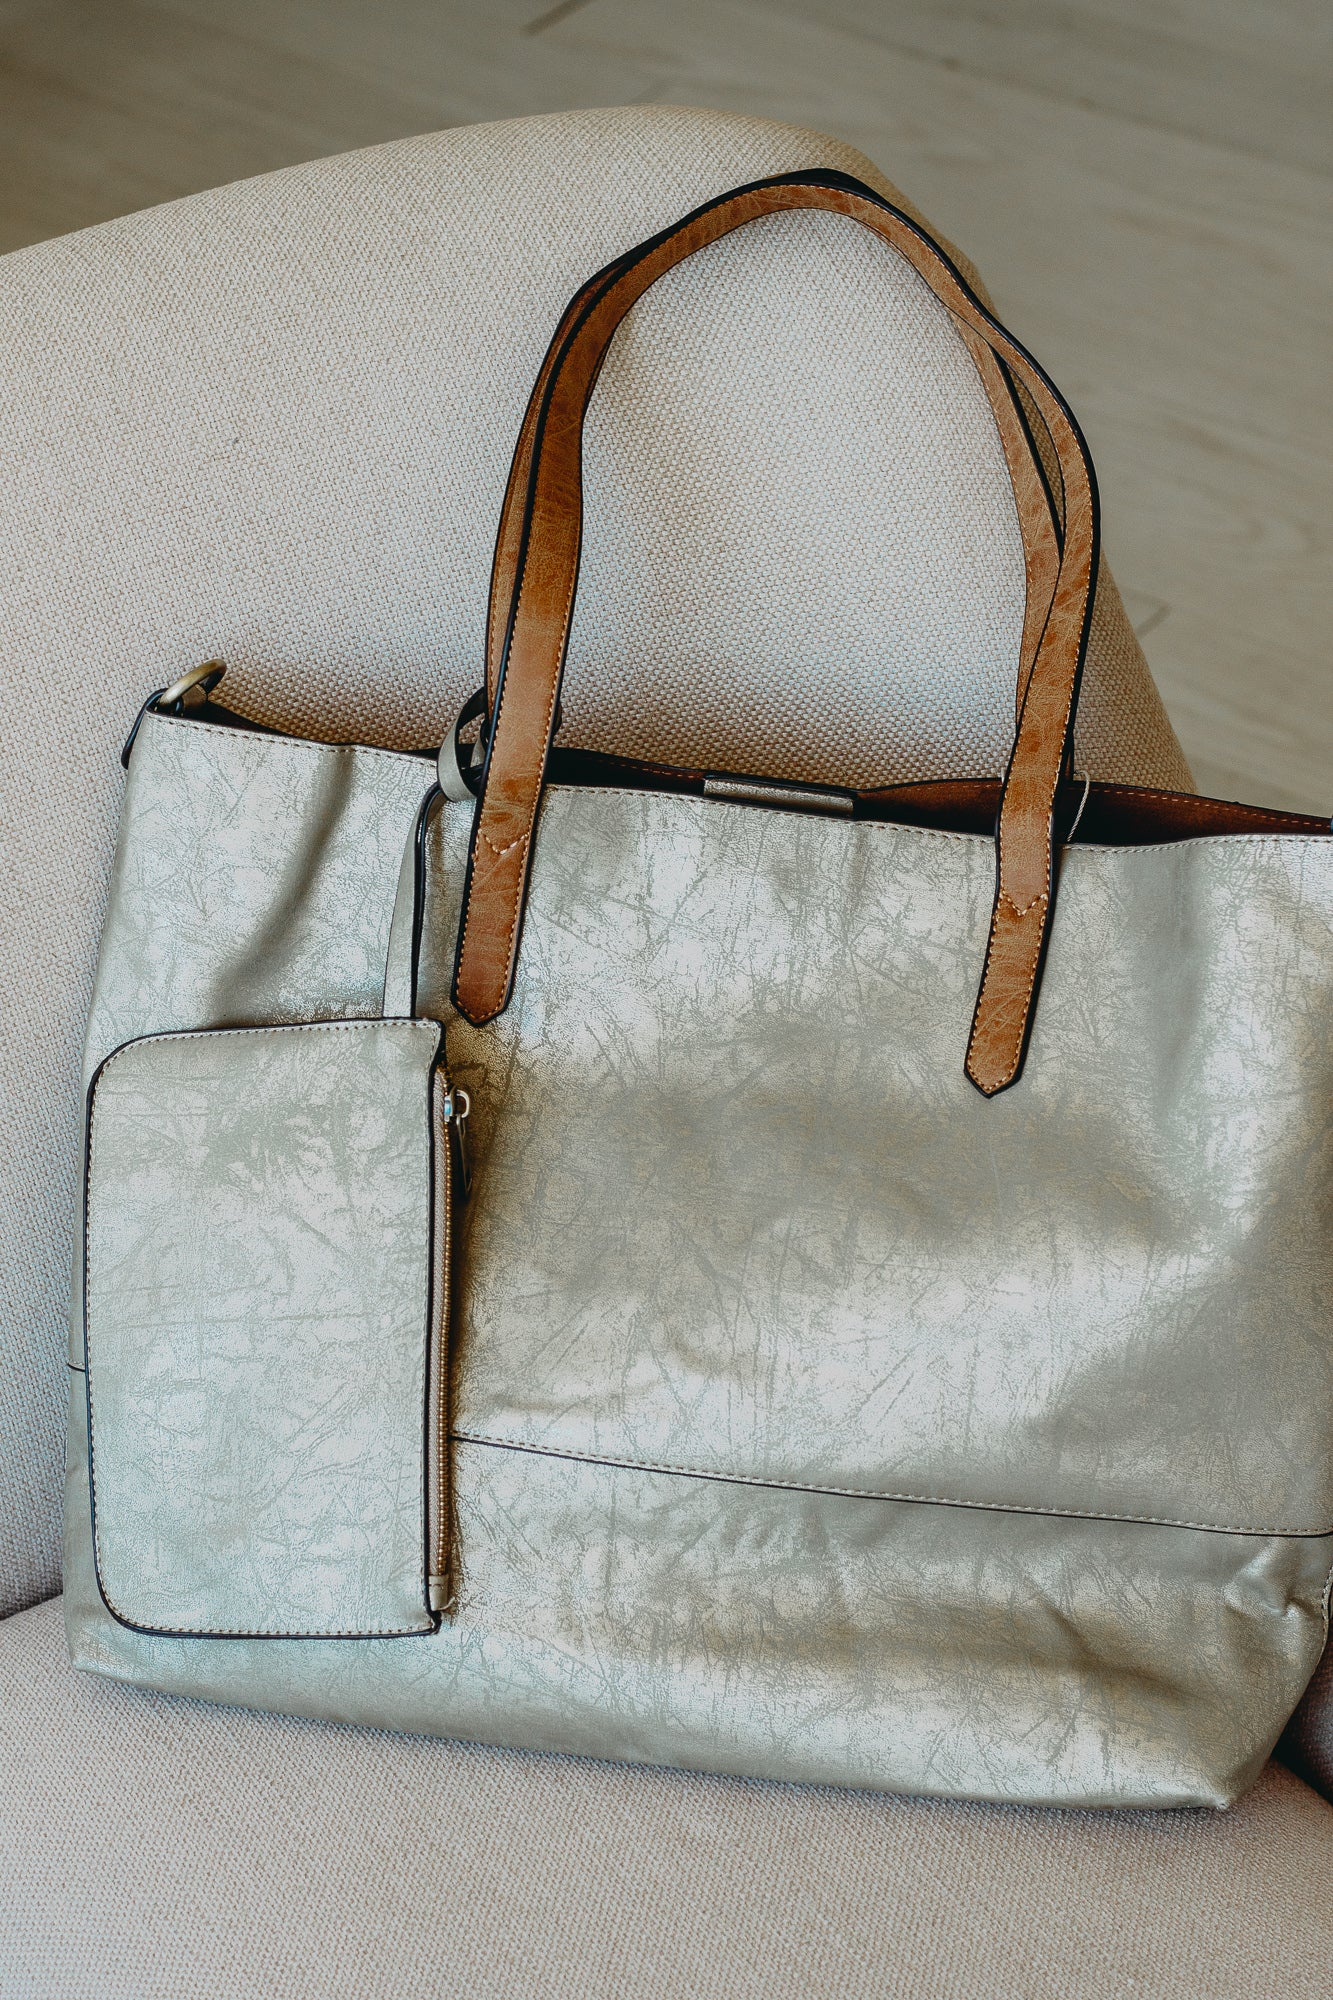 Brushed Metallic Light Gold Tote